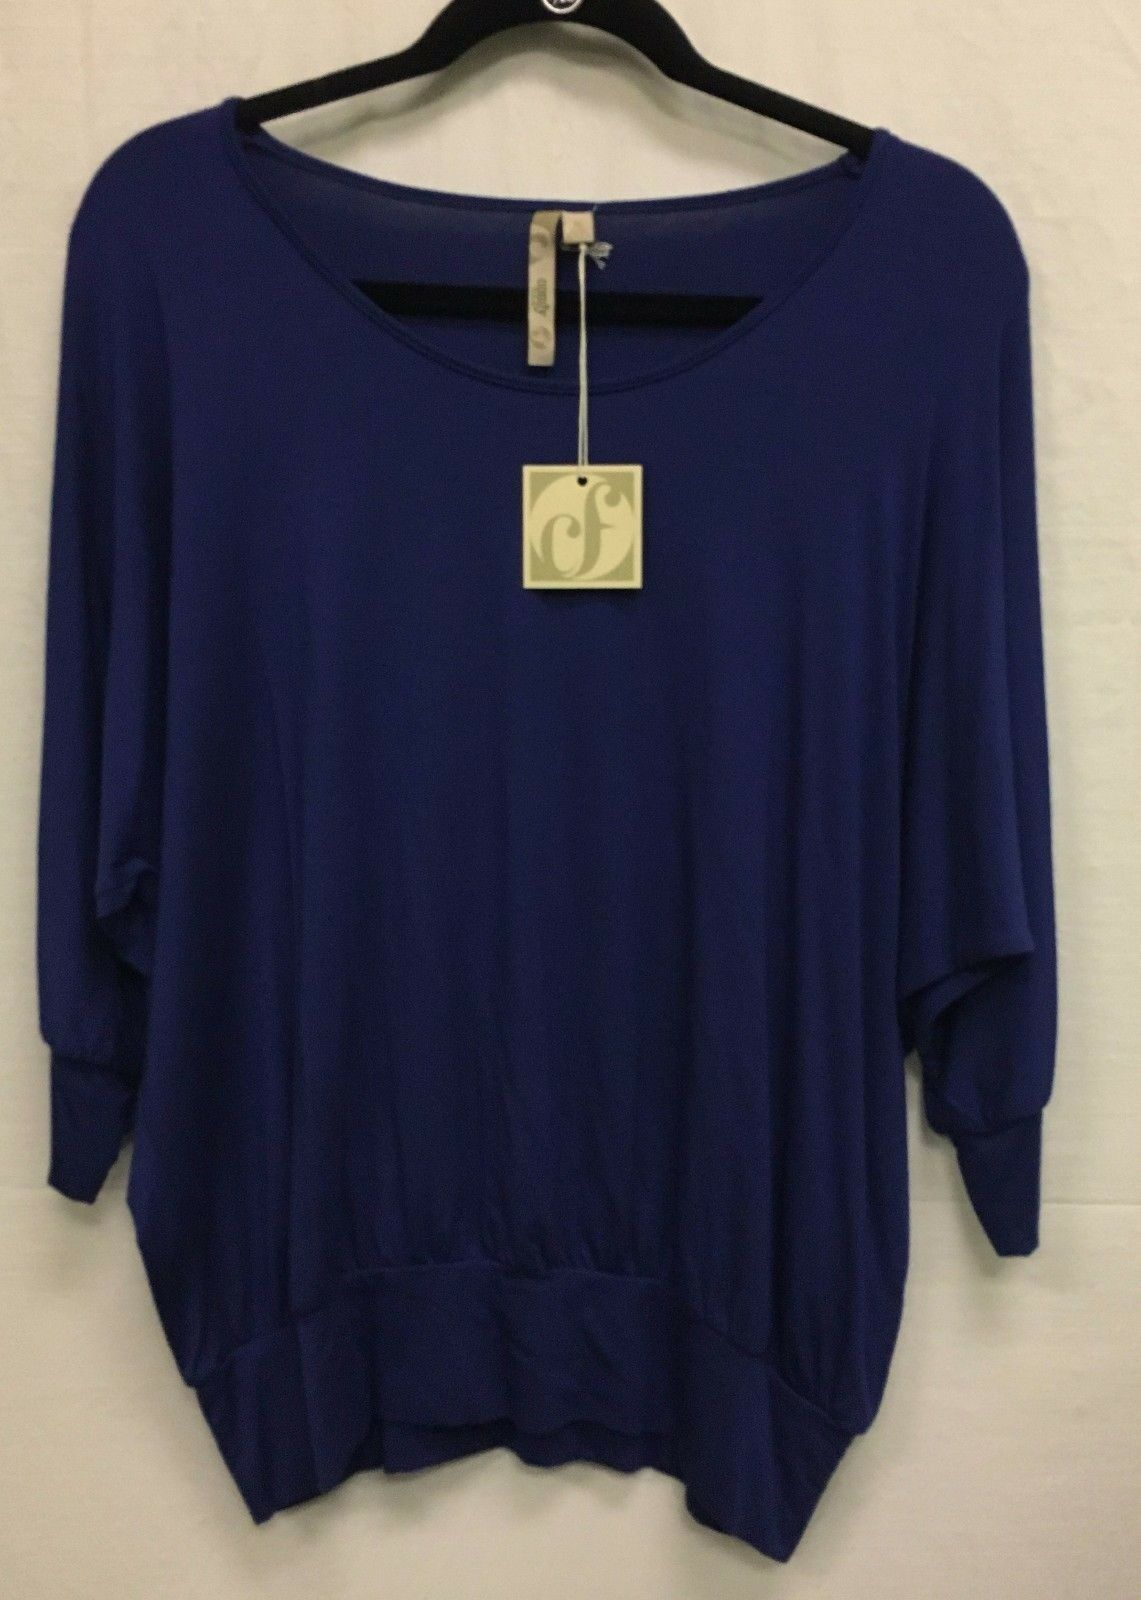 Comfy USA Modal Dolman 3 4 Sleeves Tunic Top Shirt Many colors Sizes Style M580